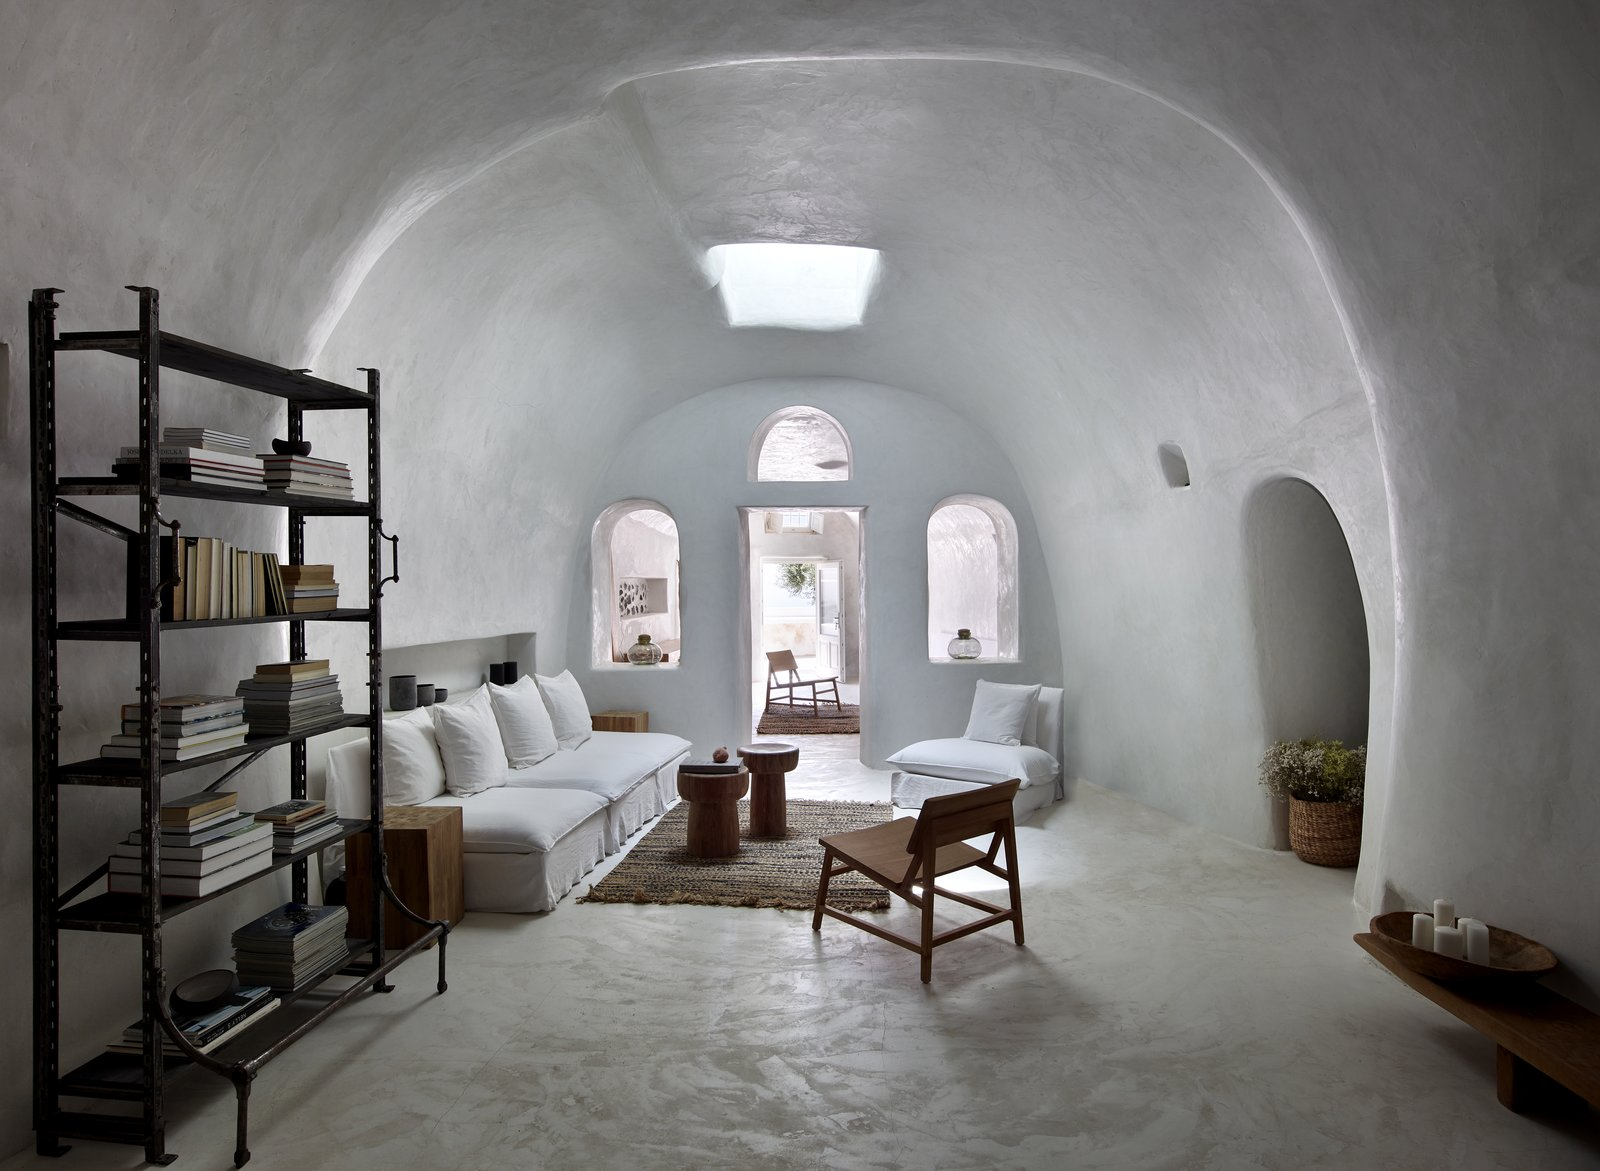 Living Room, Chair, Sofa, End Tables, and Bookcase For his own home nearby, Bellonias transformed a cave dwelling into a three-bedroom getaway featuring pressed cement walls and skylights that bring light into the serene interiors.   Photo 2 of 10 in These Dreamy Villas on Santorini Take Inspiration From Traditional Cave Dwellings